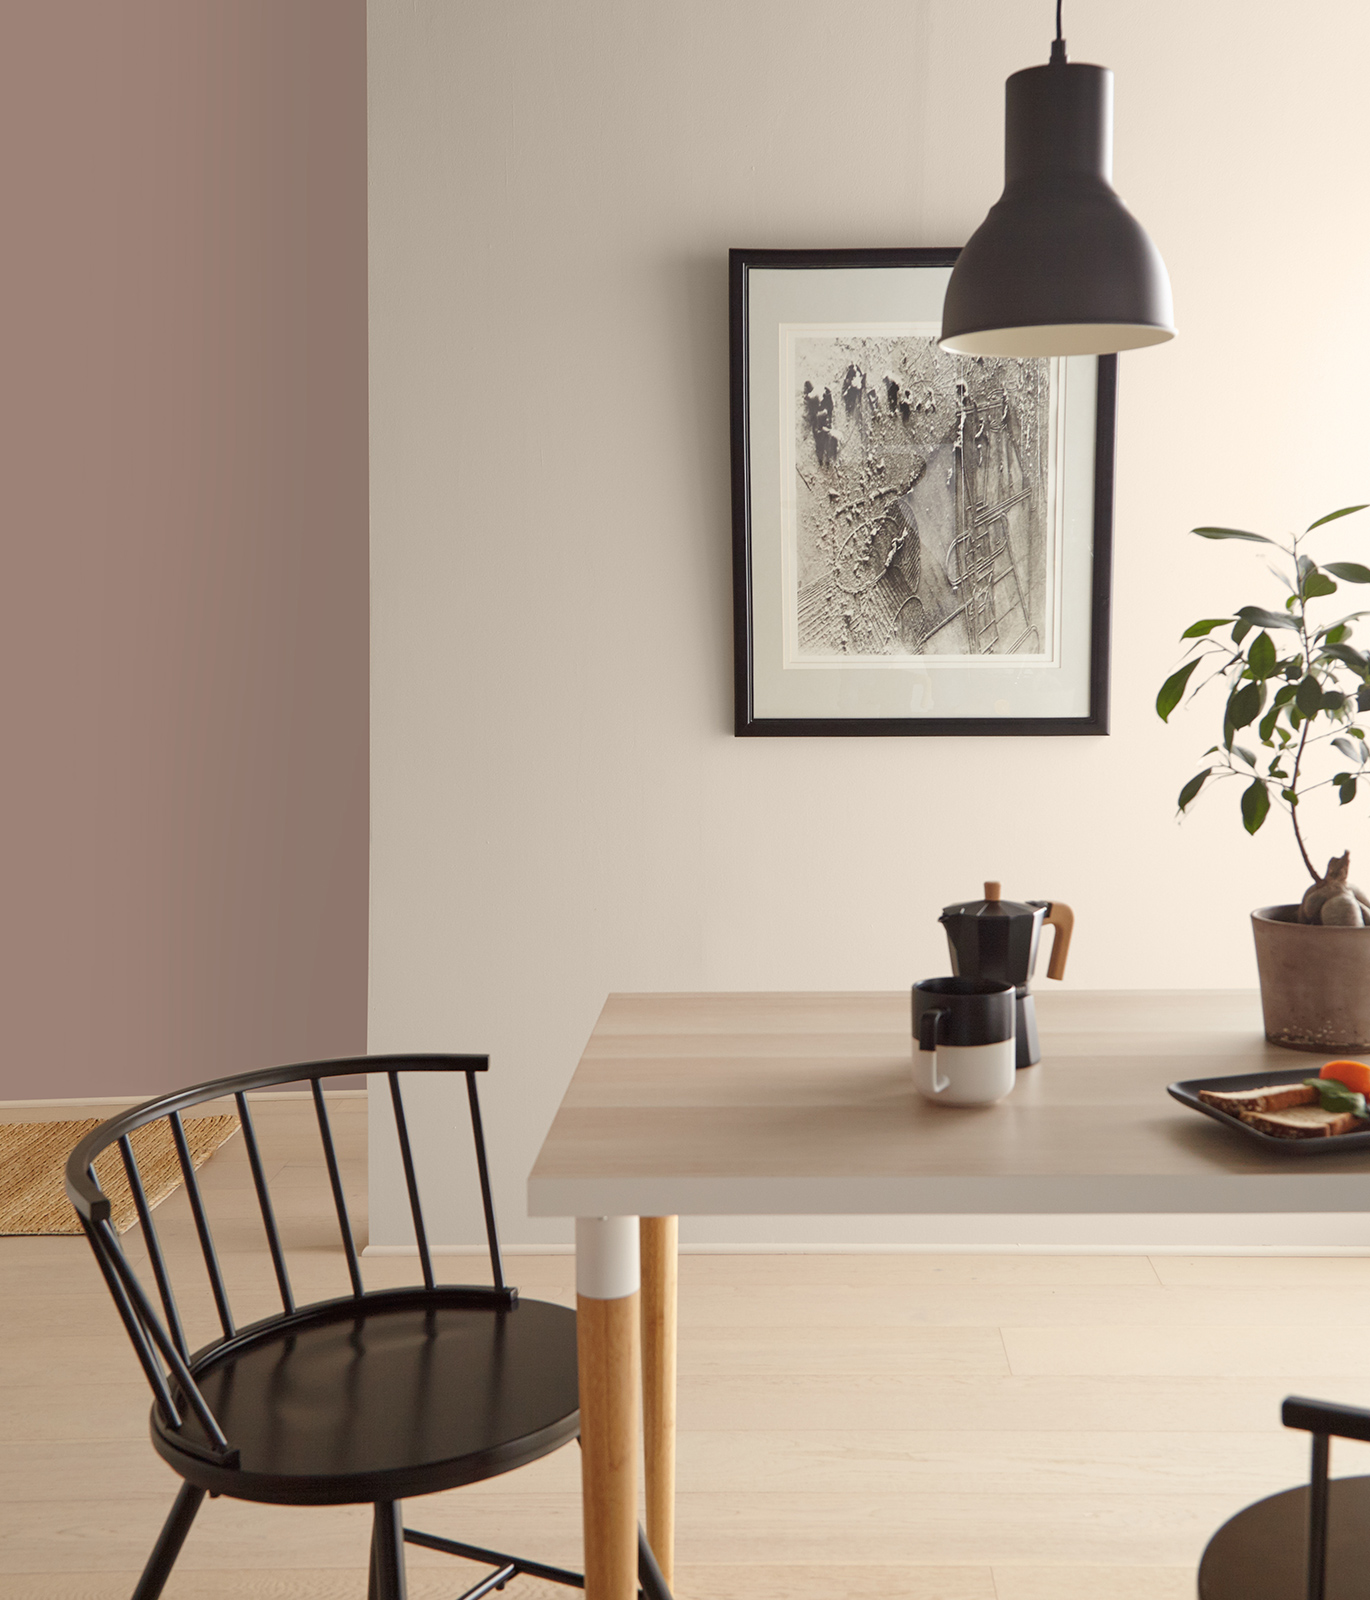 A casual dining setting showing a corner of a table and chair. On the table is coffee, plate of food and potted plant. A light hangs down above the table.